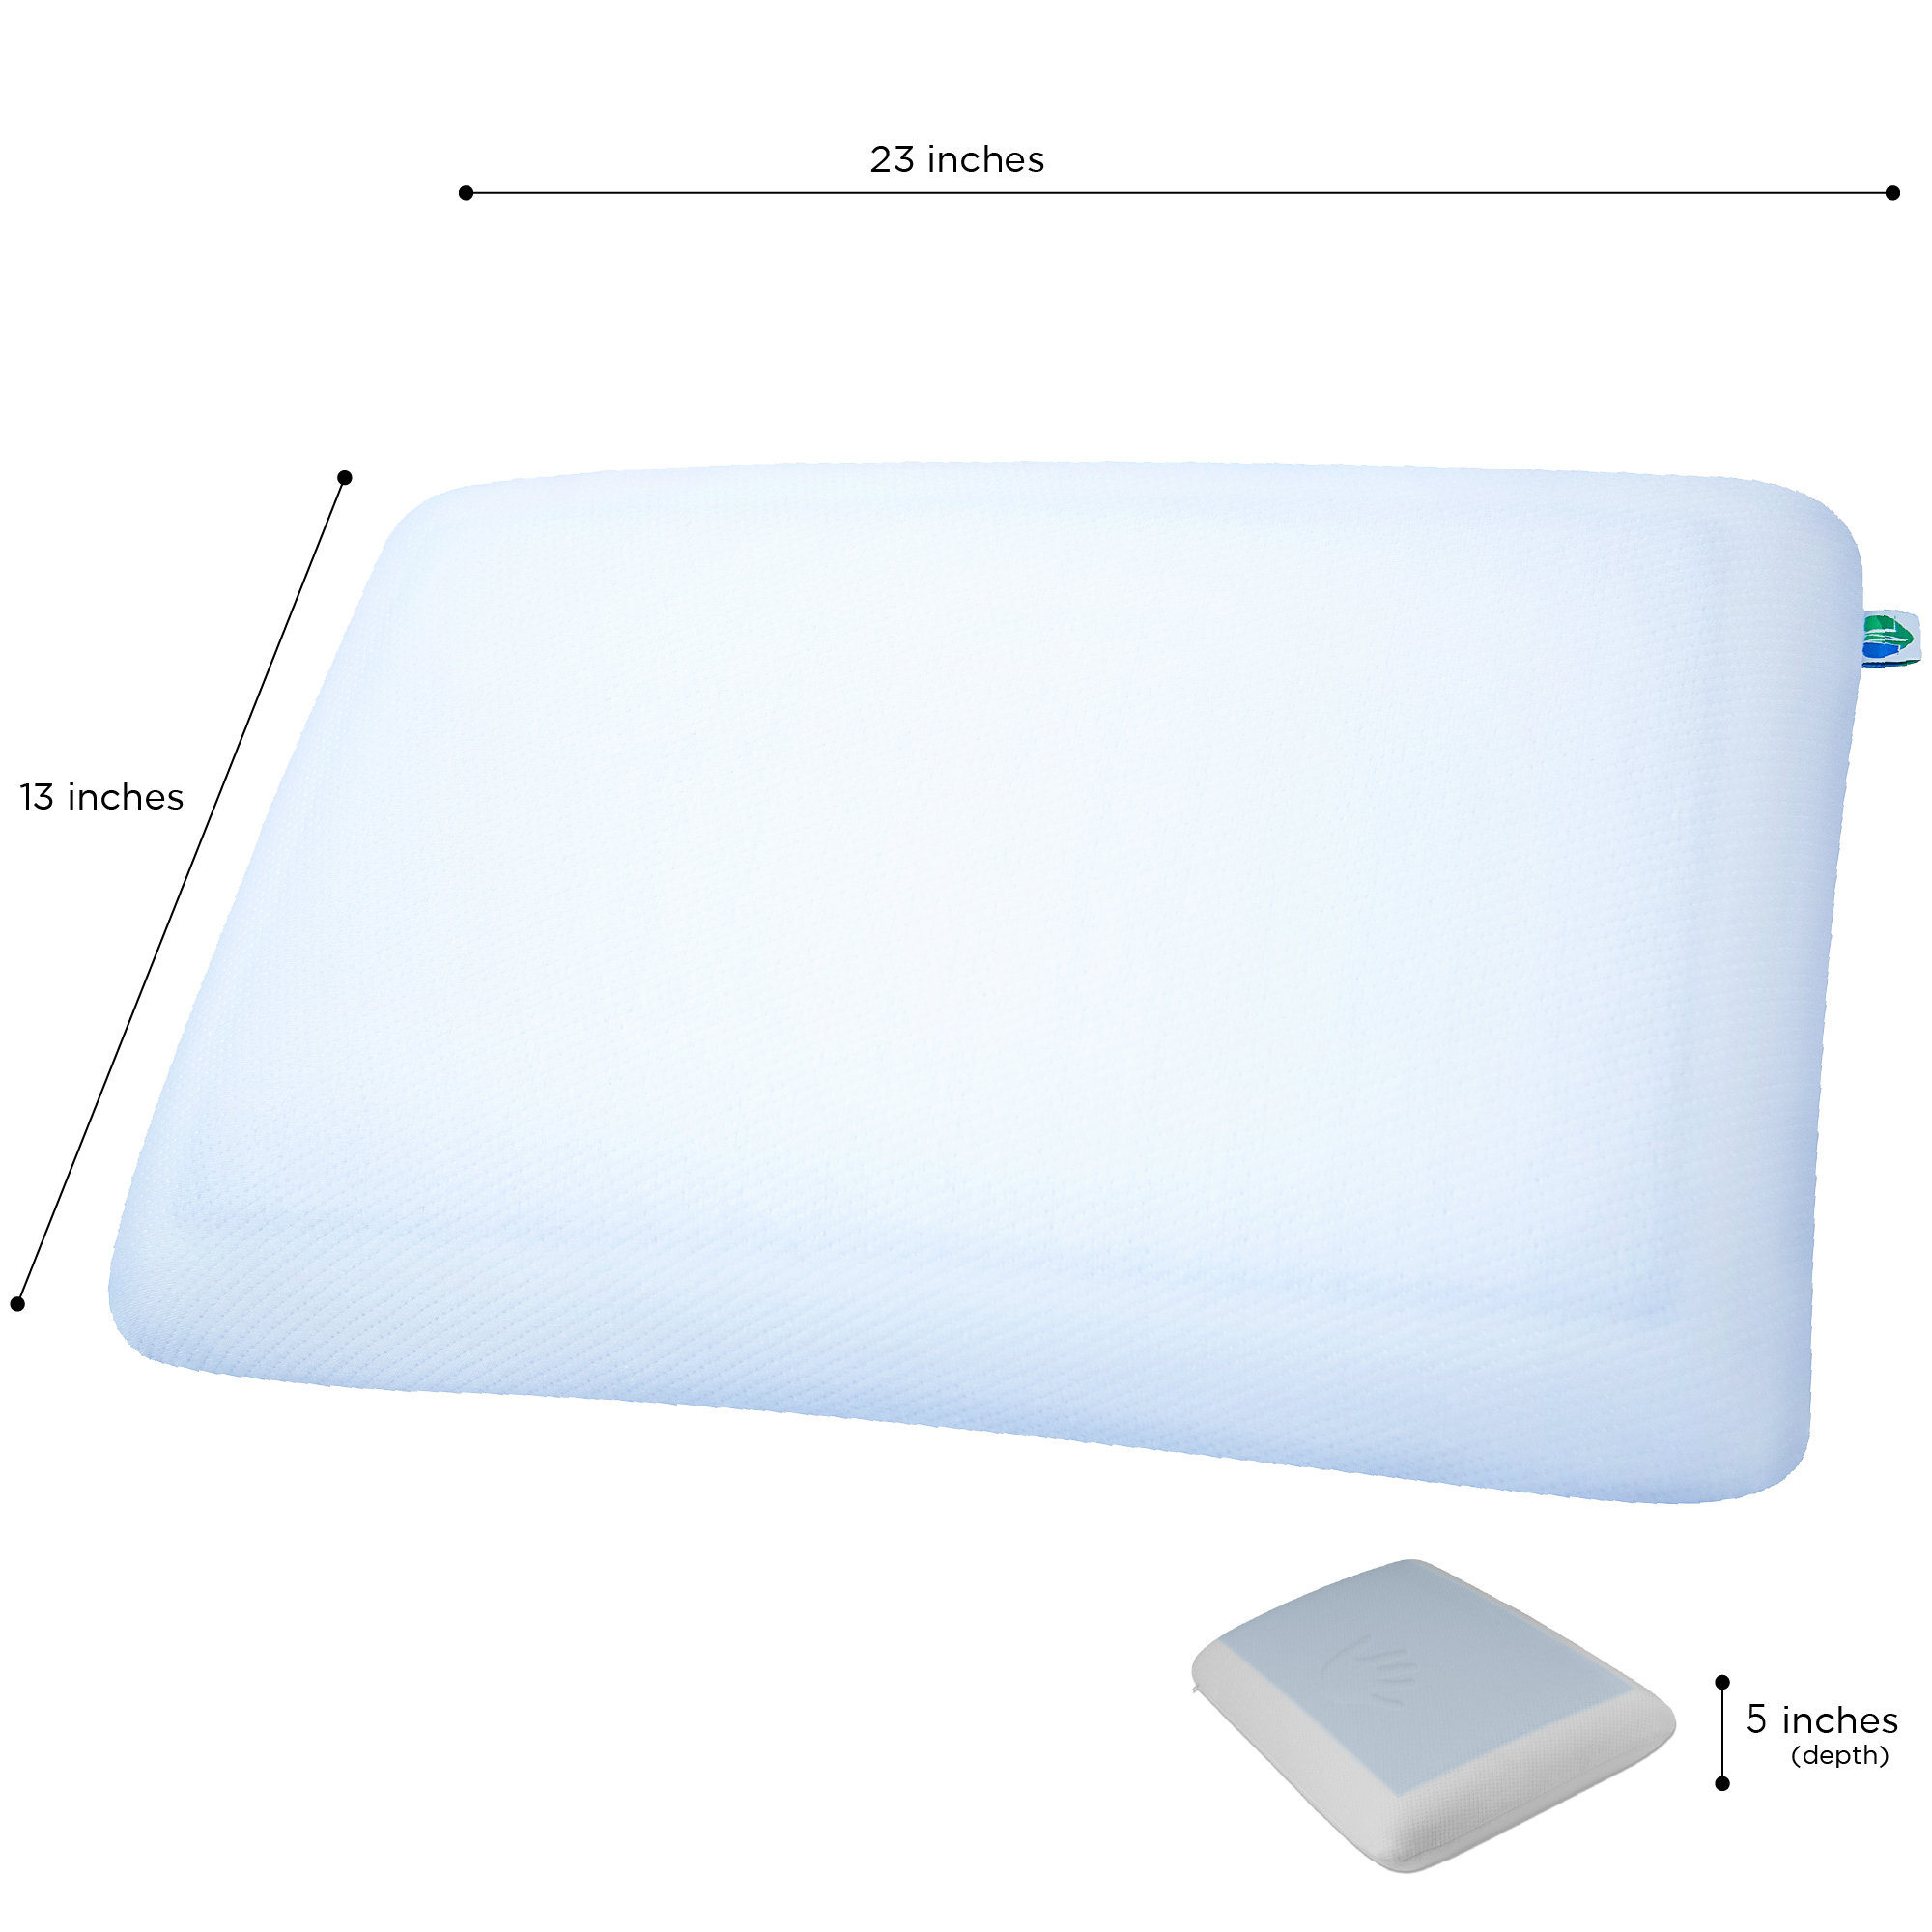 2 pack pharmedoc memory foam pillow with cooling gel extra comfortable pillow with a washable pillow case firm pillow with firm density foam